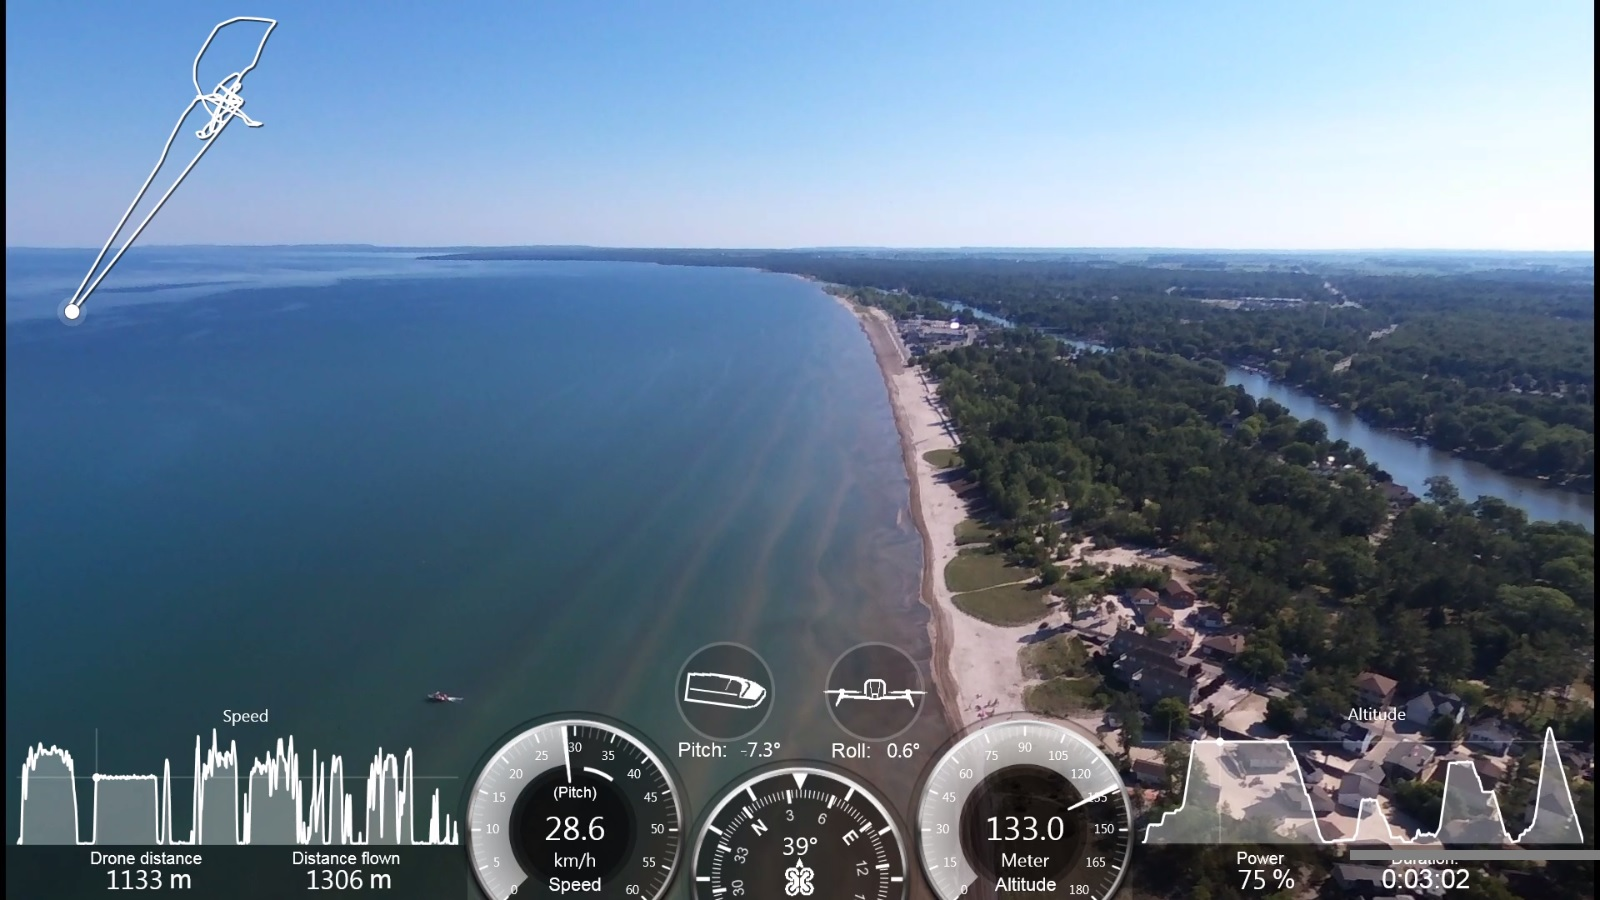 VIDEO TEMPLATE FLIGHT DATA | DJI FORUM